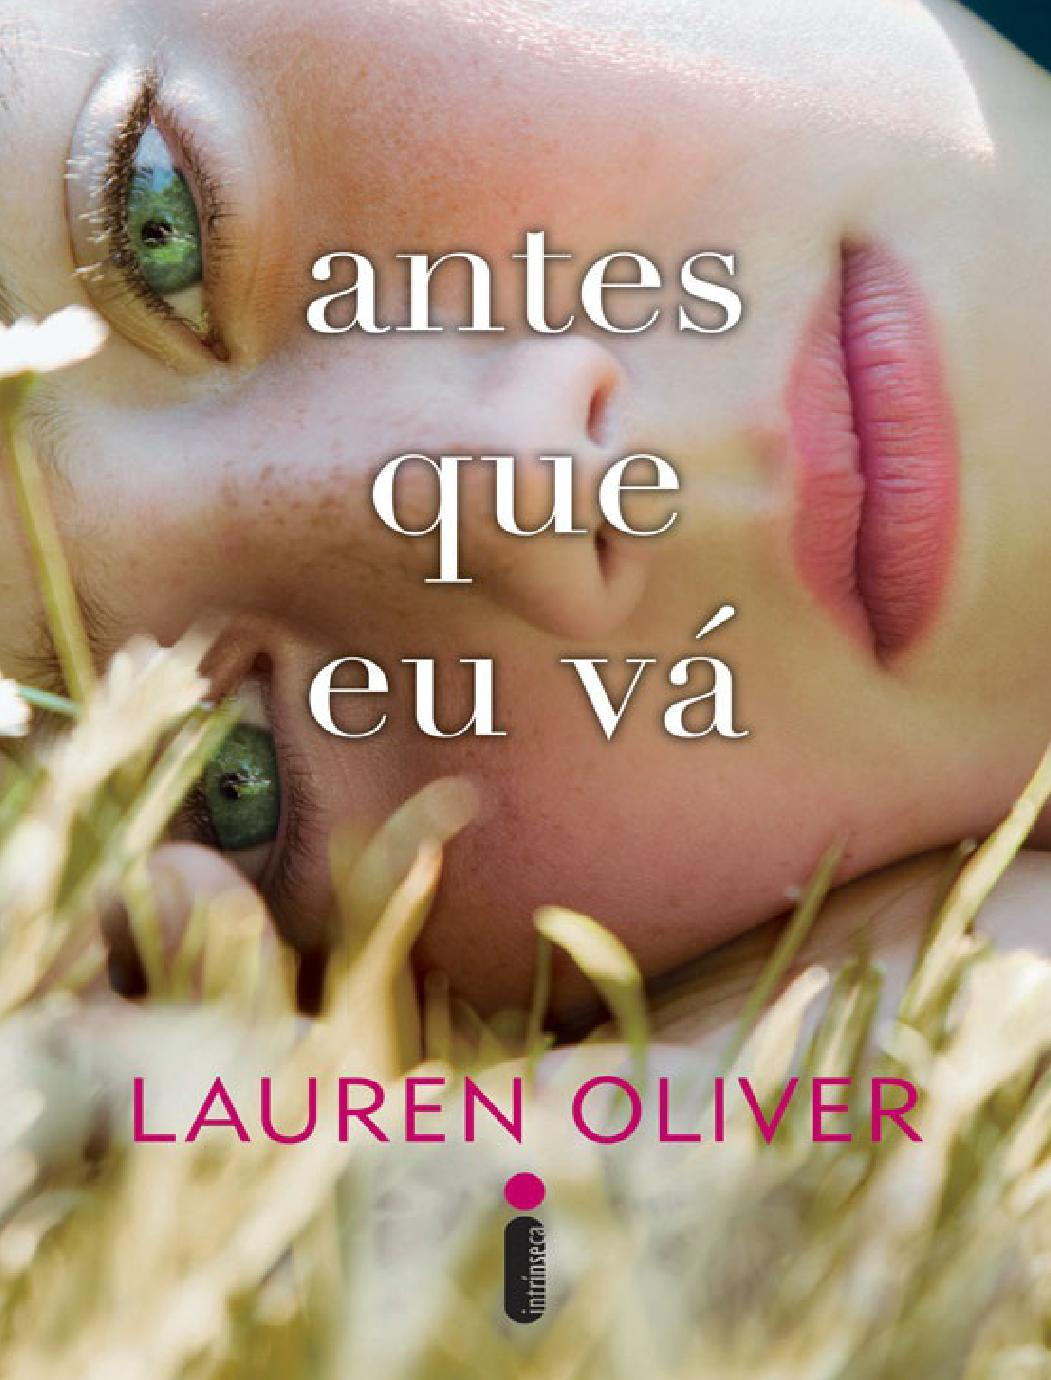 Antes que eu Vá - Lauren Oliver by Inass Chedid - issuu 1296c5badd